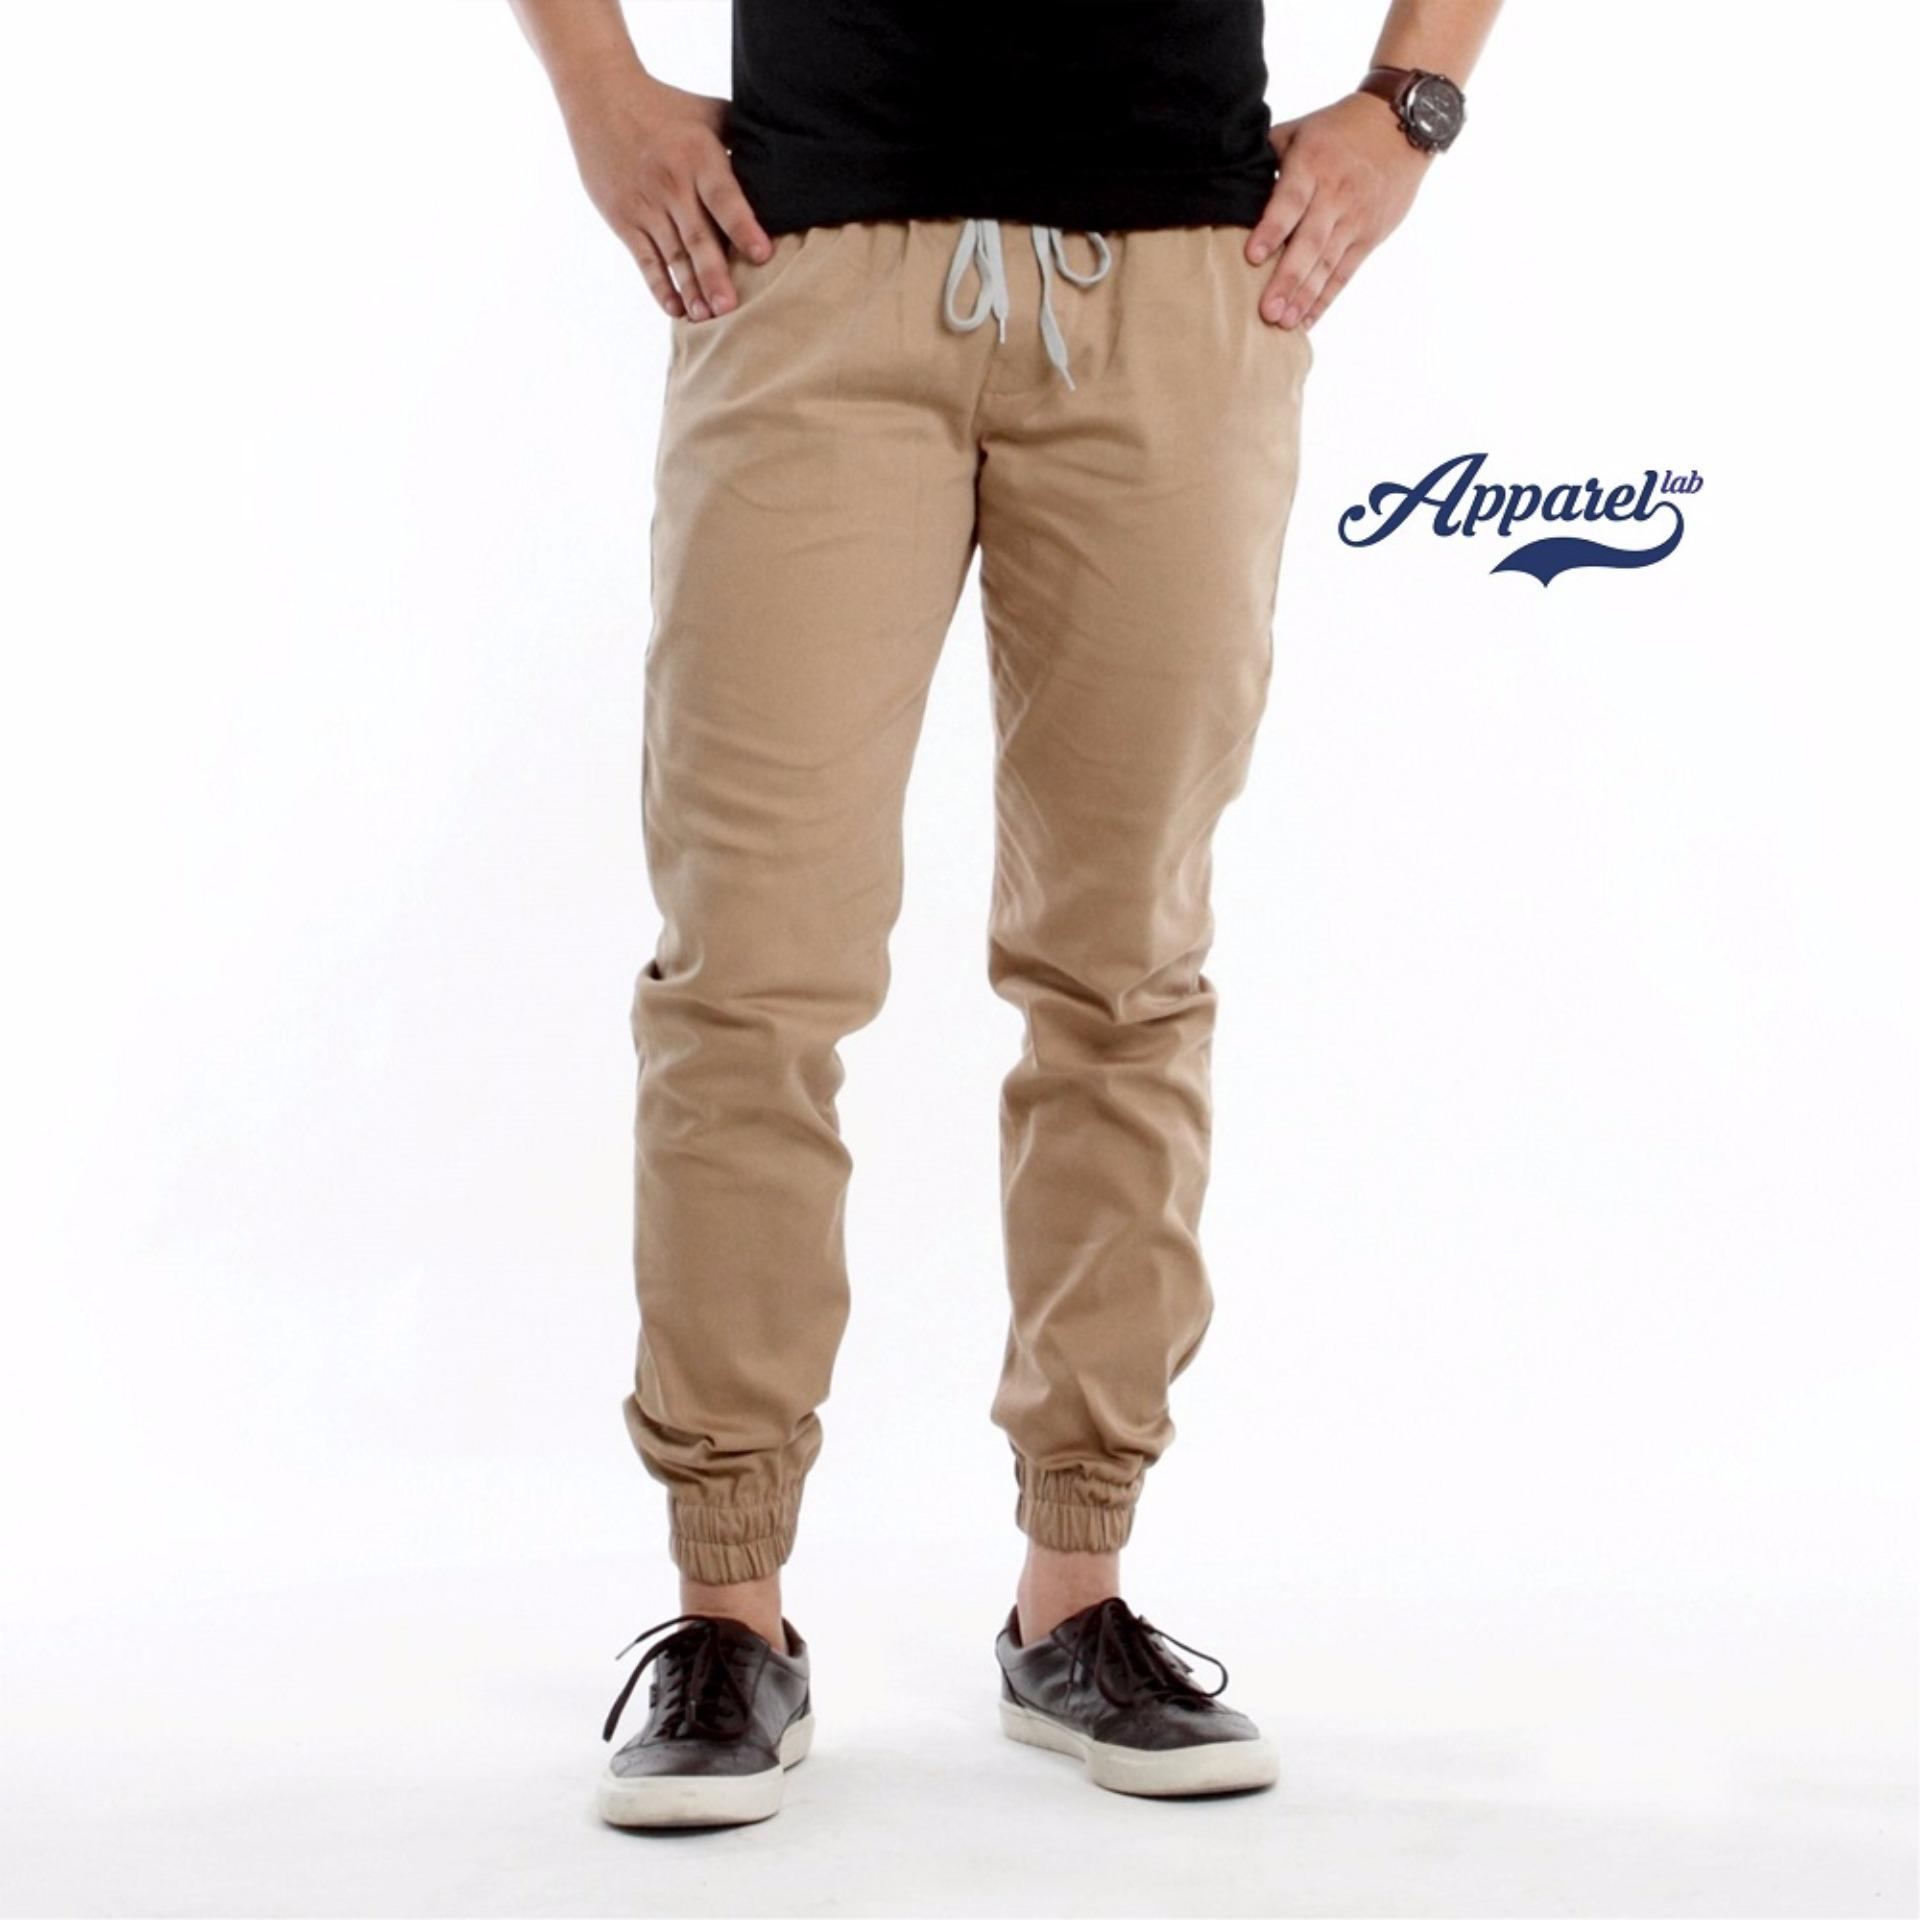 Promo Apparel Lab Jogger Basic Khaki Apparel Lab Terbaru